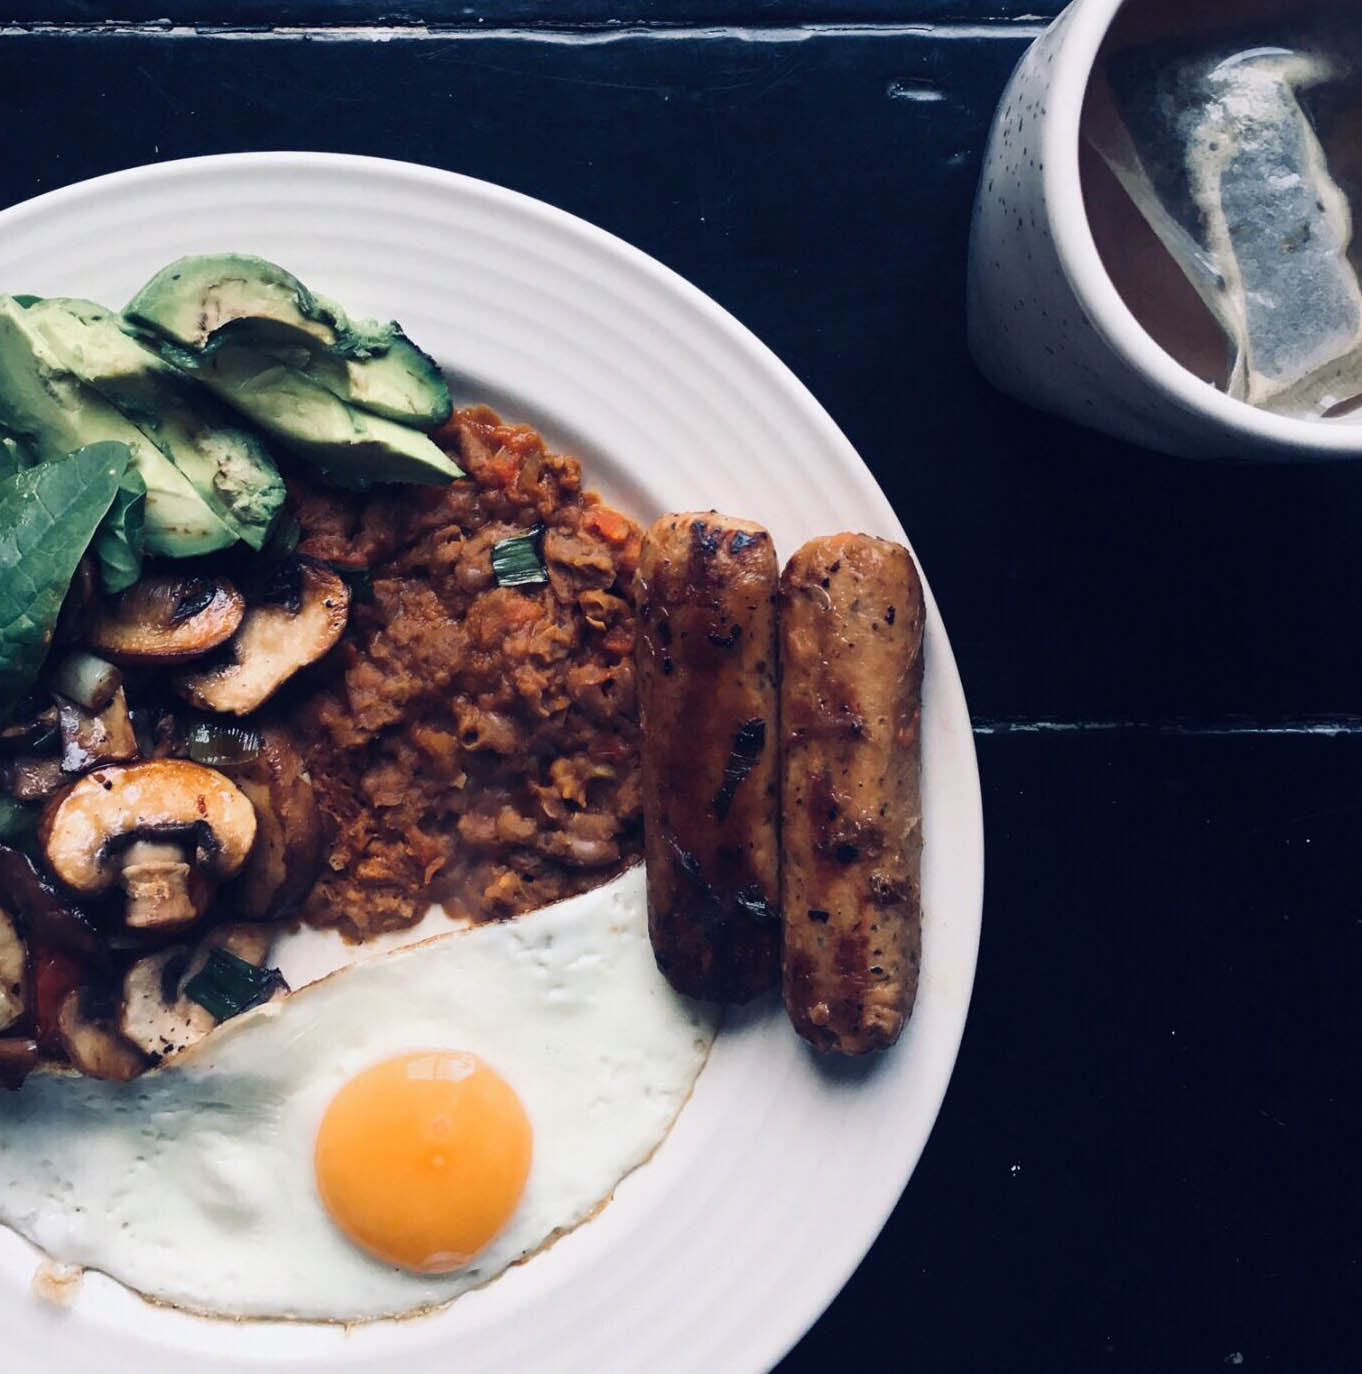 Pic of our delicious midde-eastern inspired breakfast